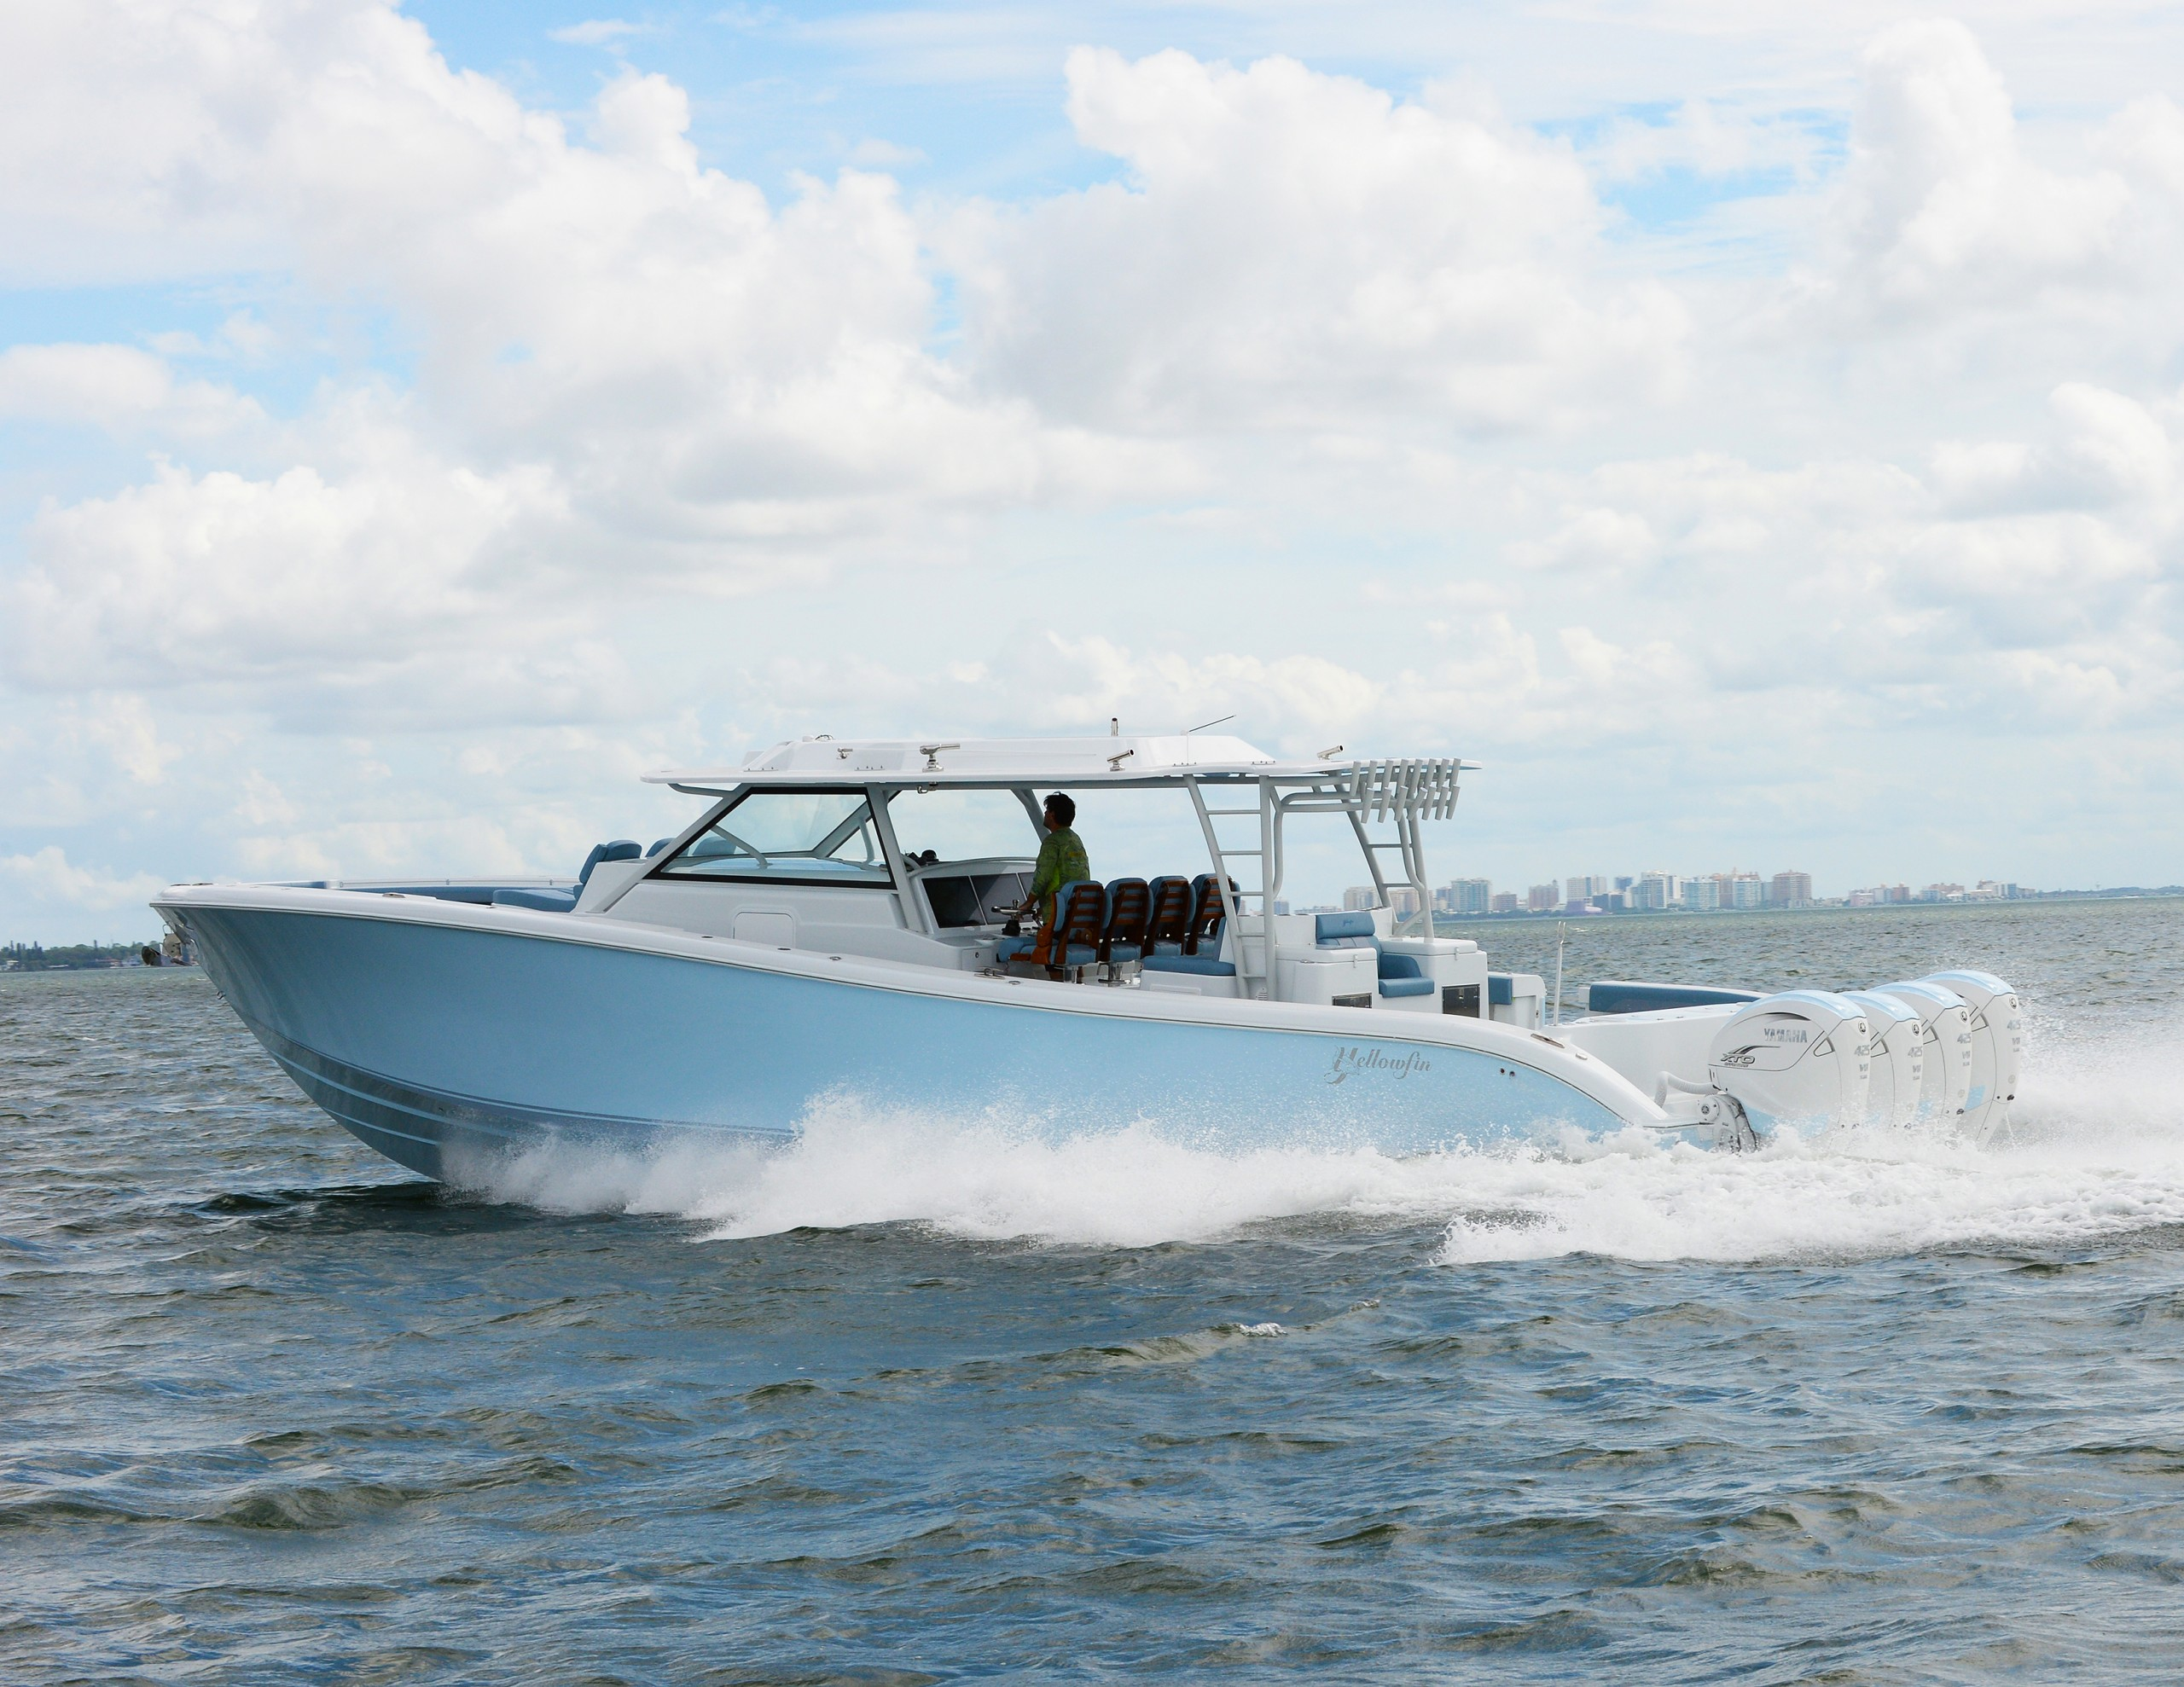 Yellowfin's New 54 Offshore Debuting at Fort Lauderdale International Boat Show